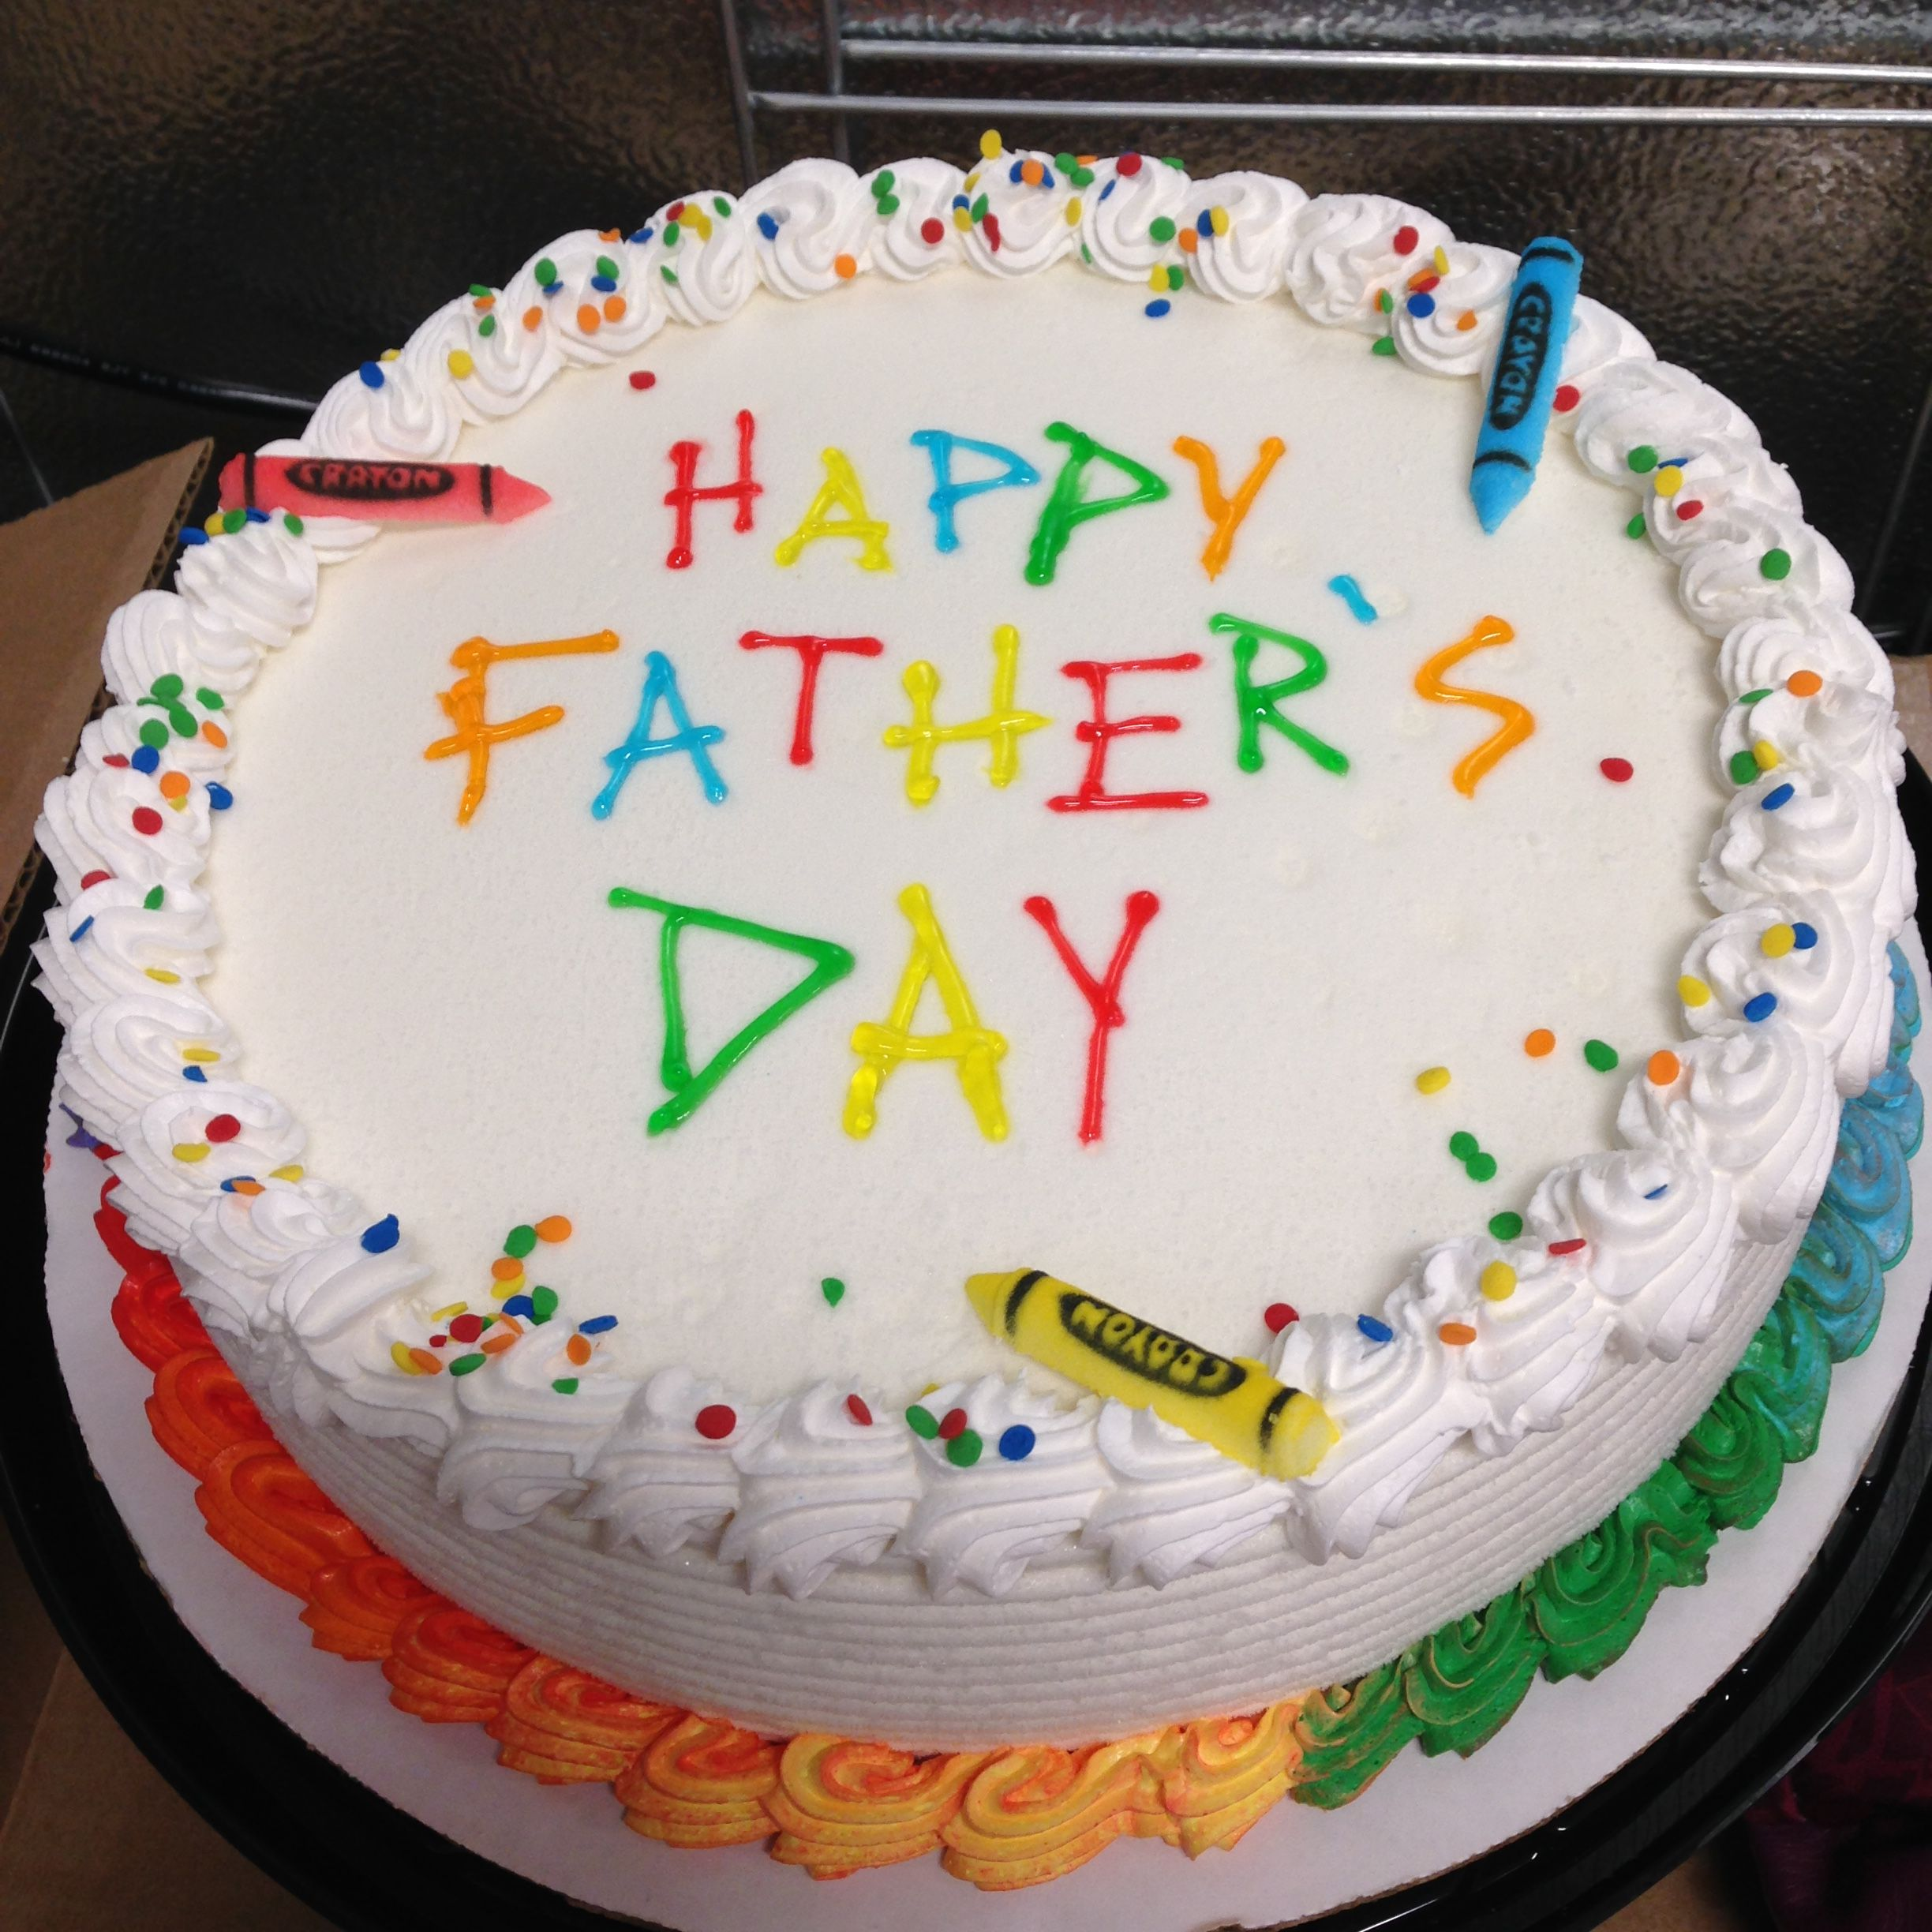 Crayon Father S Day Dq Ice Cream Cake Buttercream Cake Designs